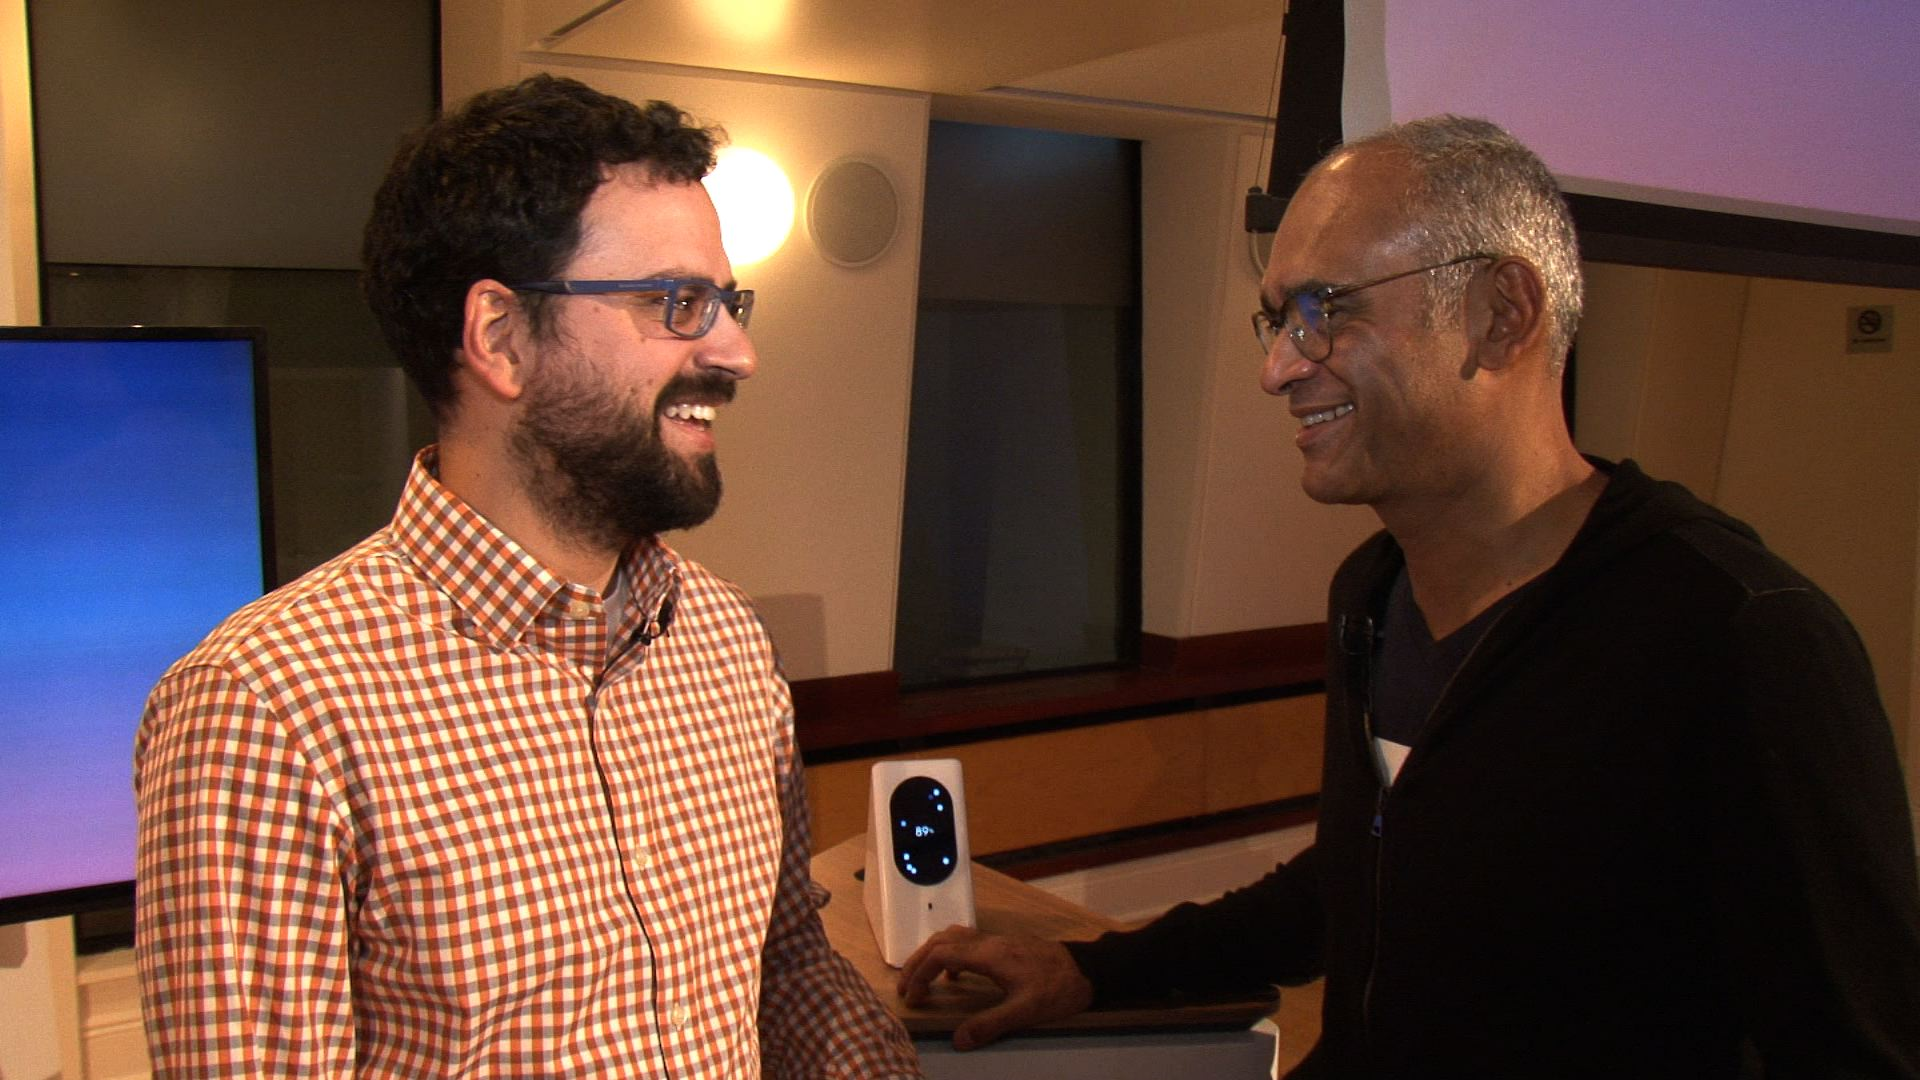 Video: Starry CEO looks to shake up the broadband market